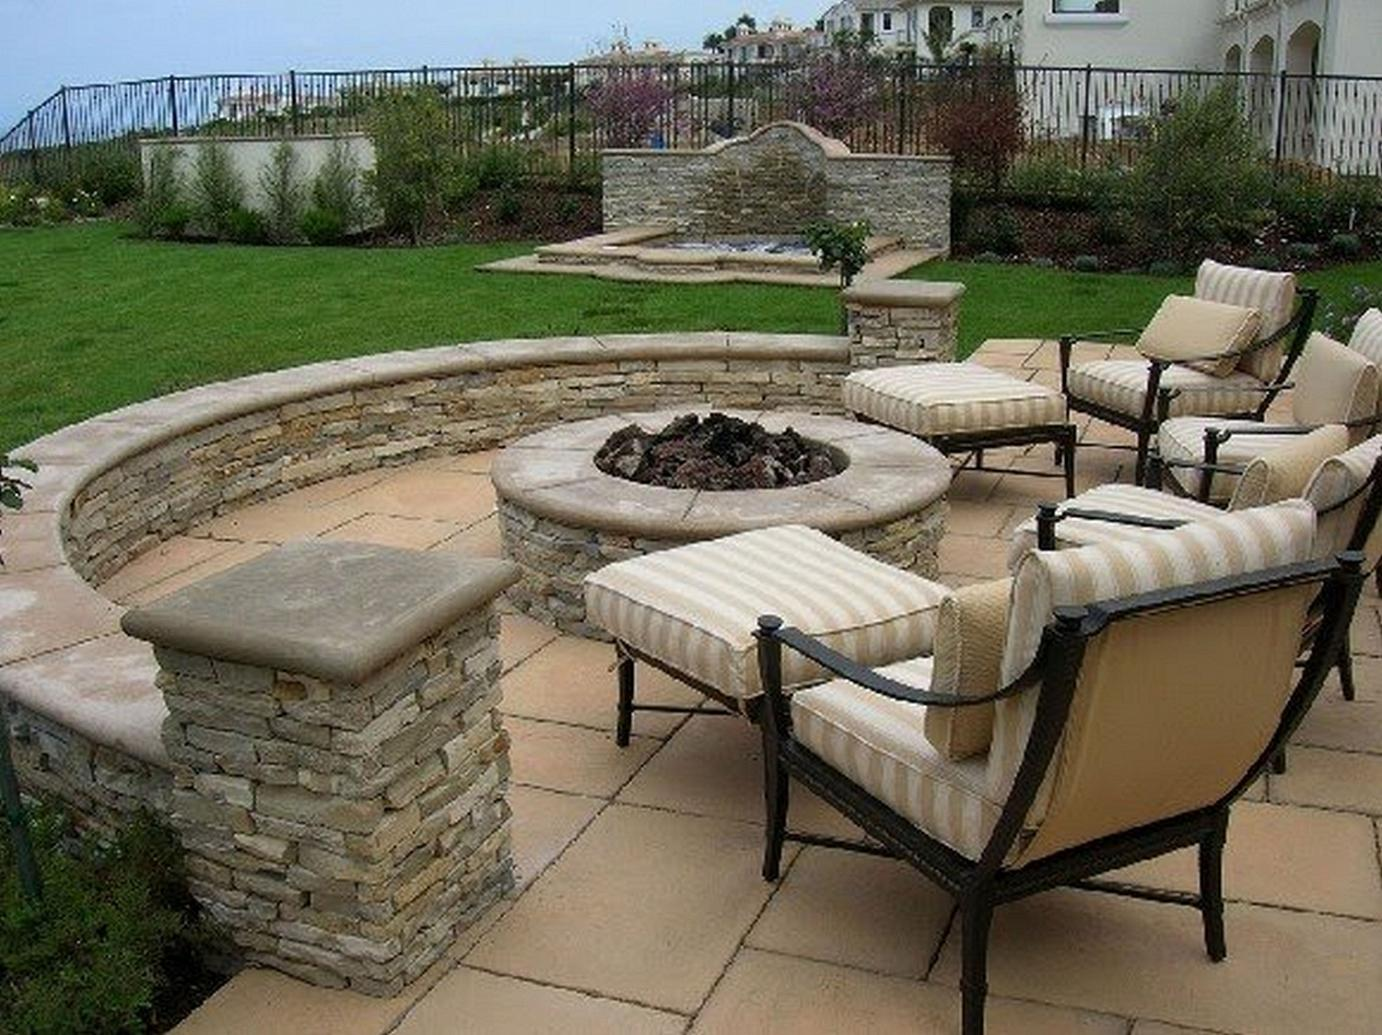 Backyard ideas budget large and beautiful photos photo to select backyard ideas budget Designer backyards